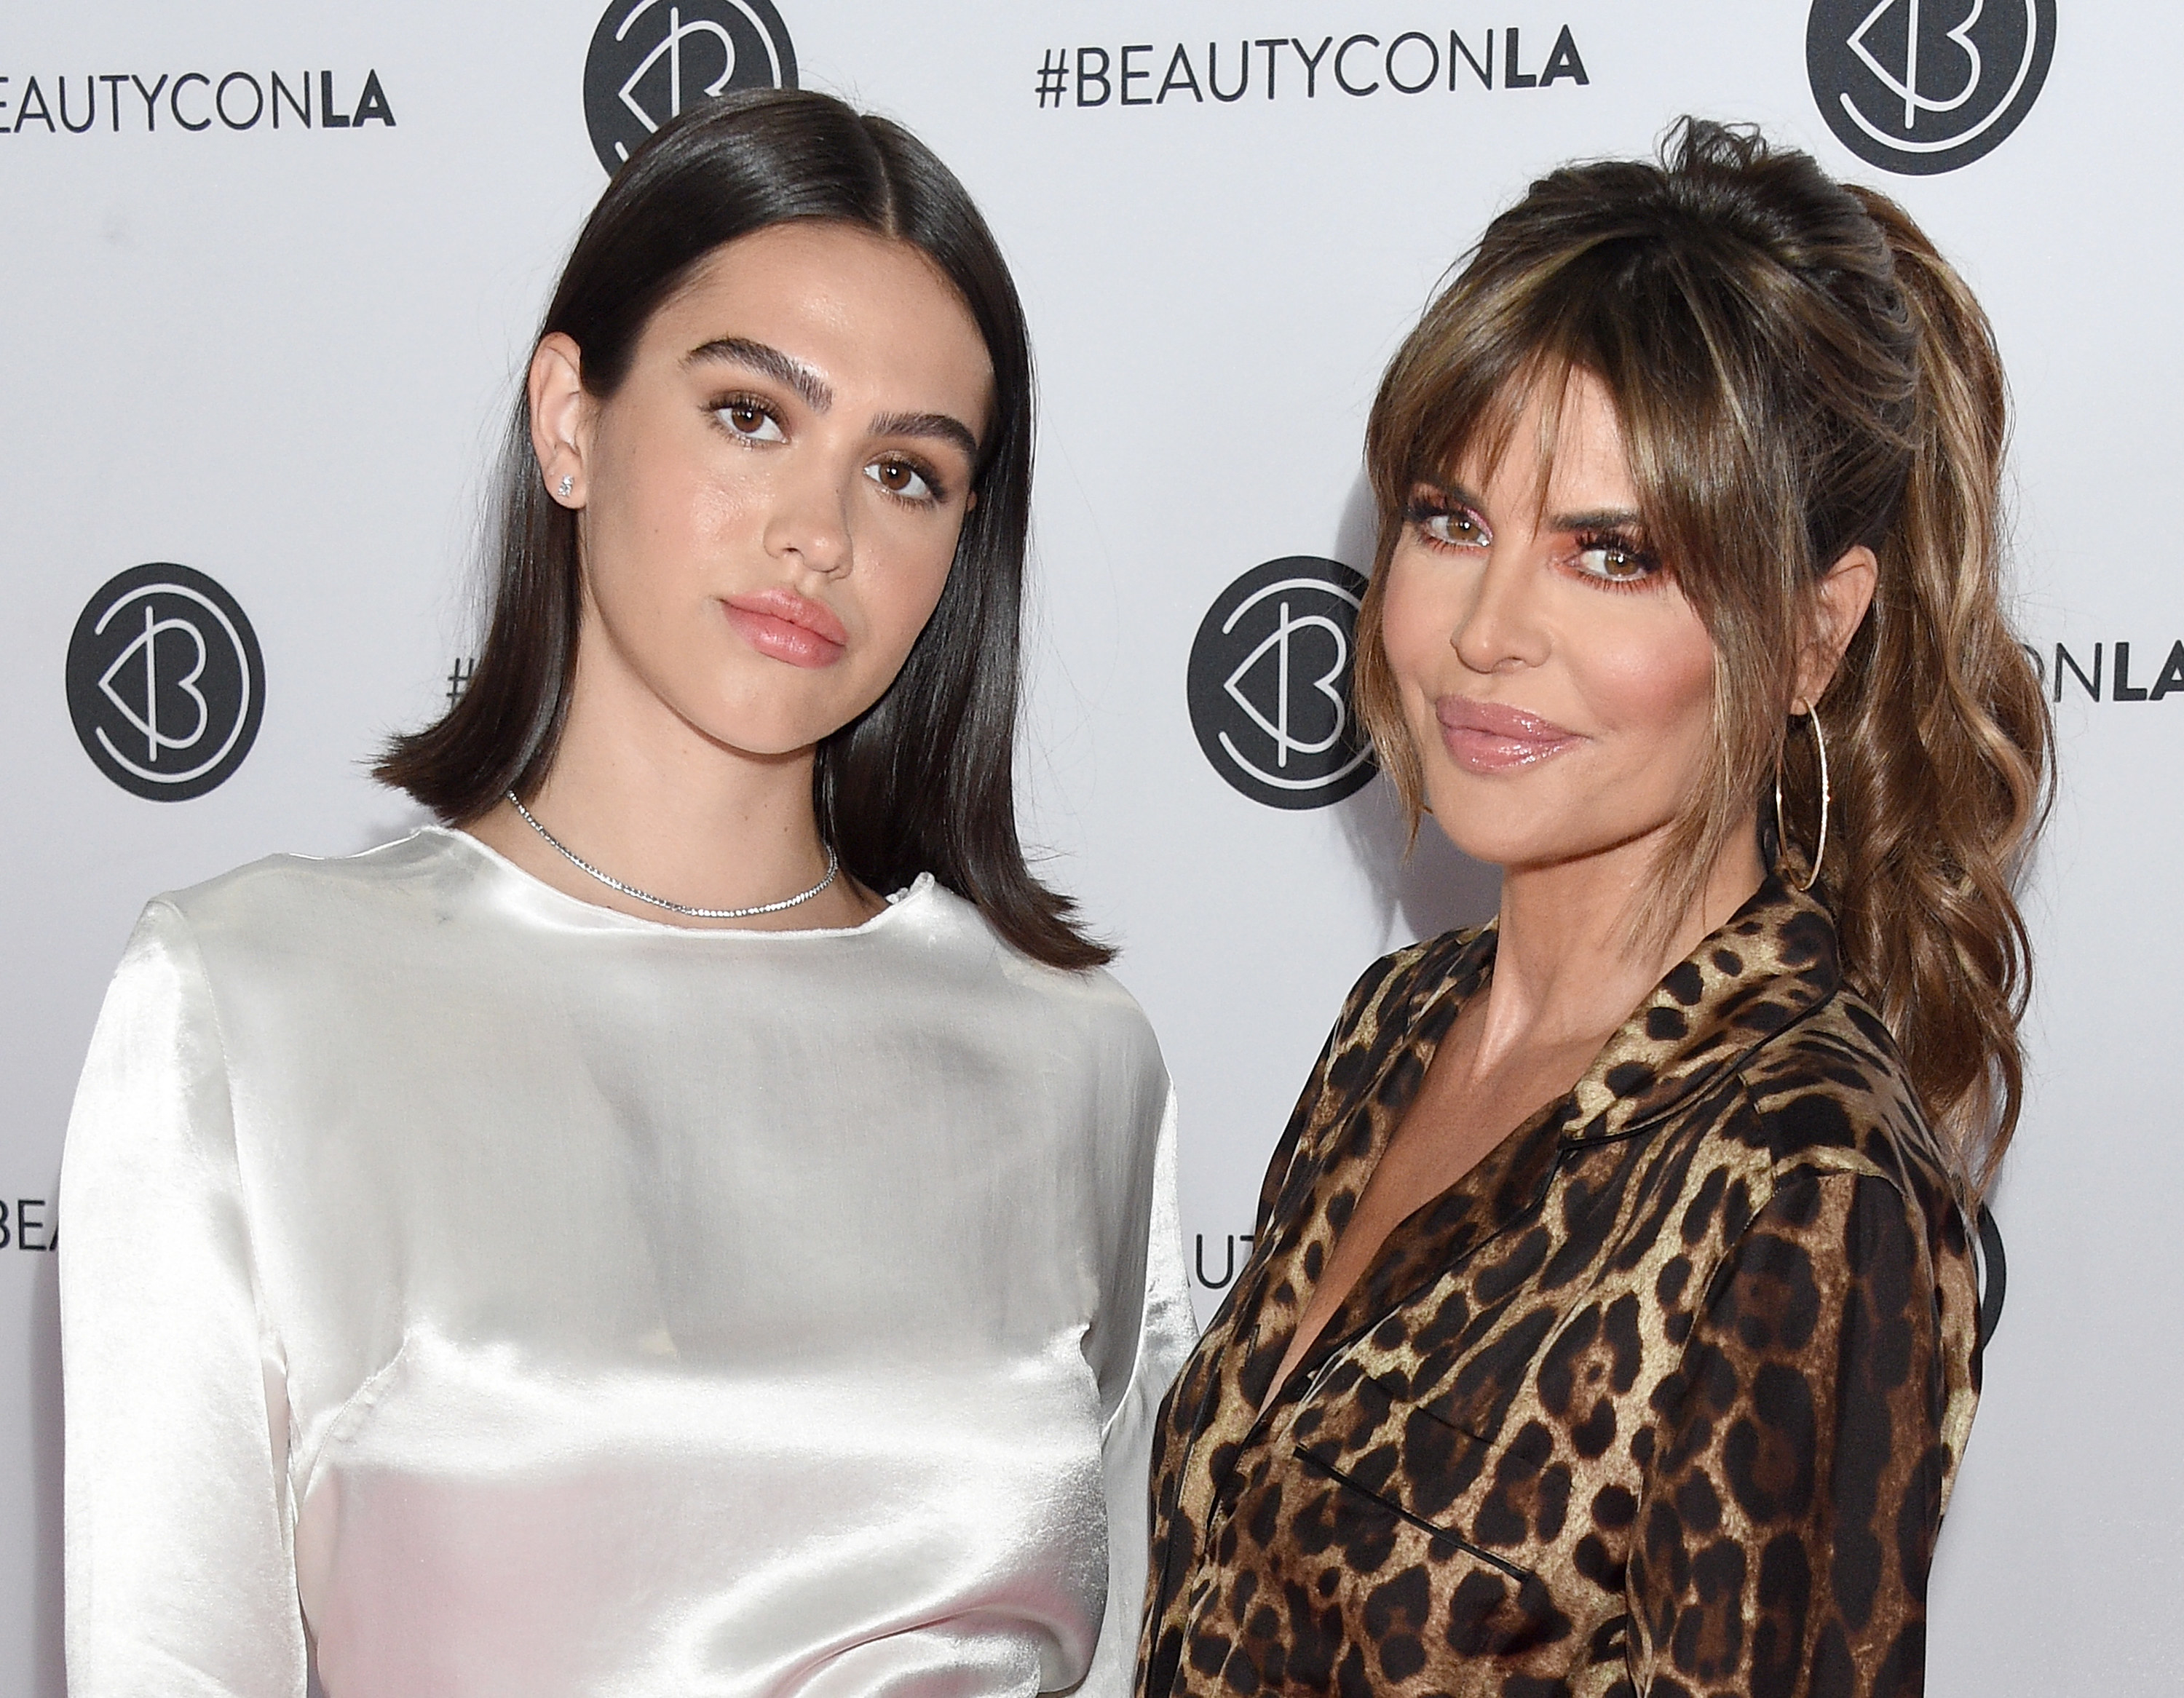 Amelia and Lisa on the red carpet